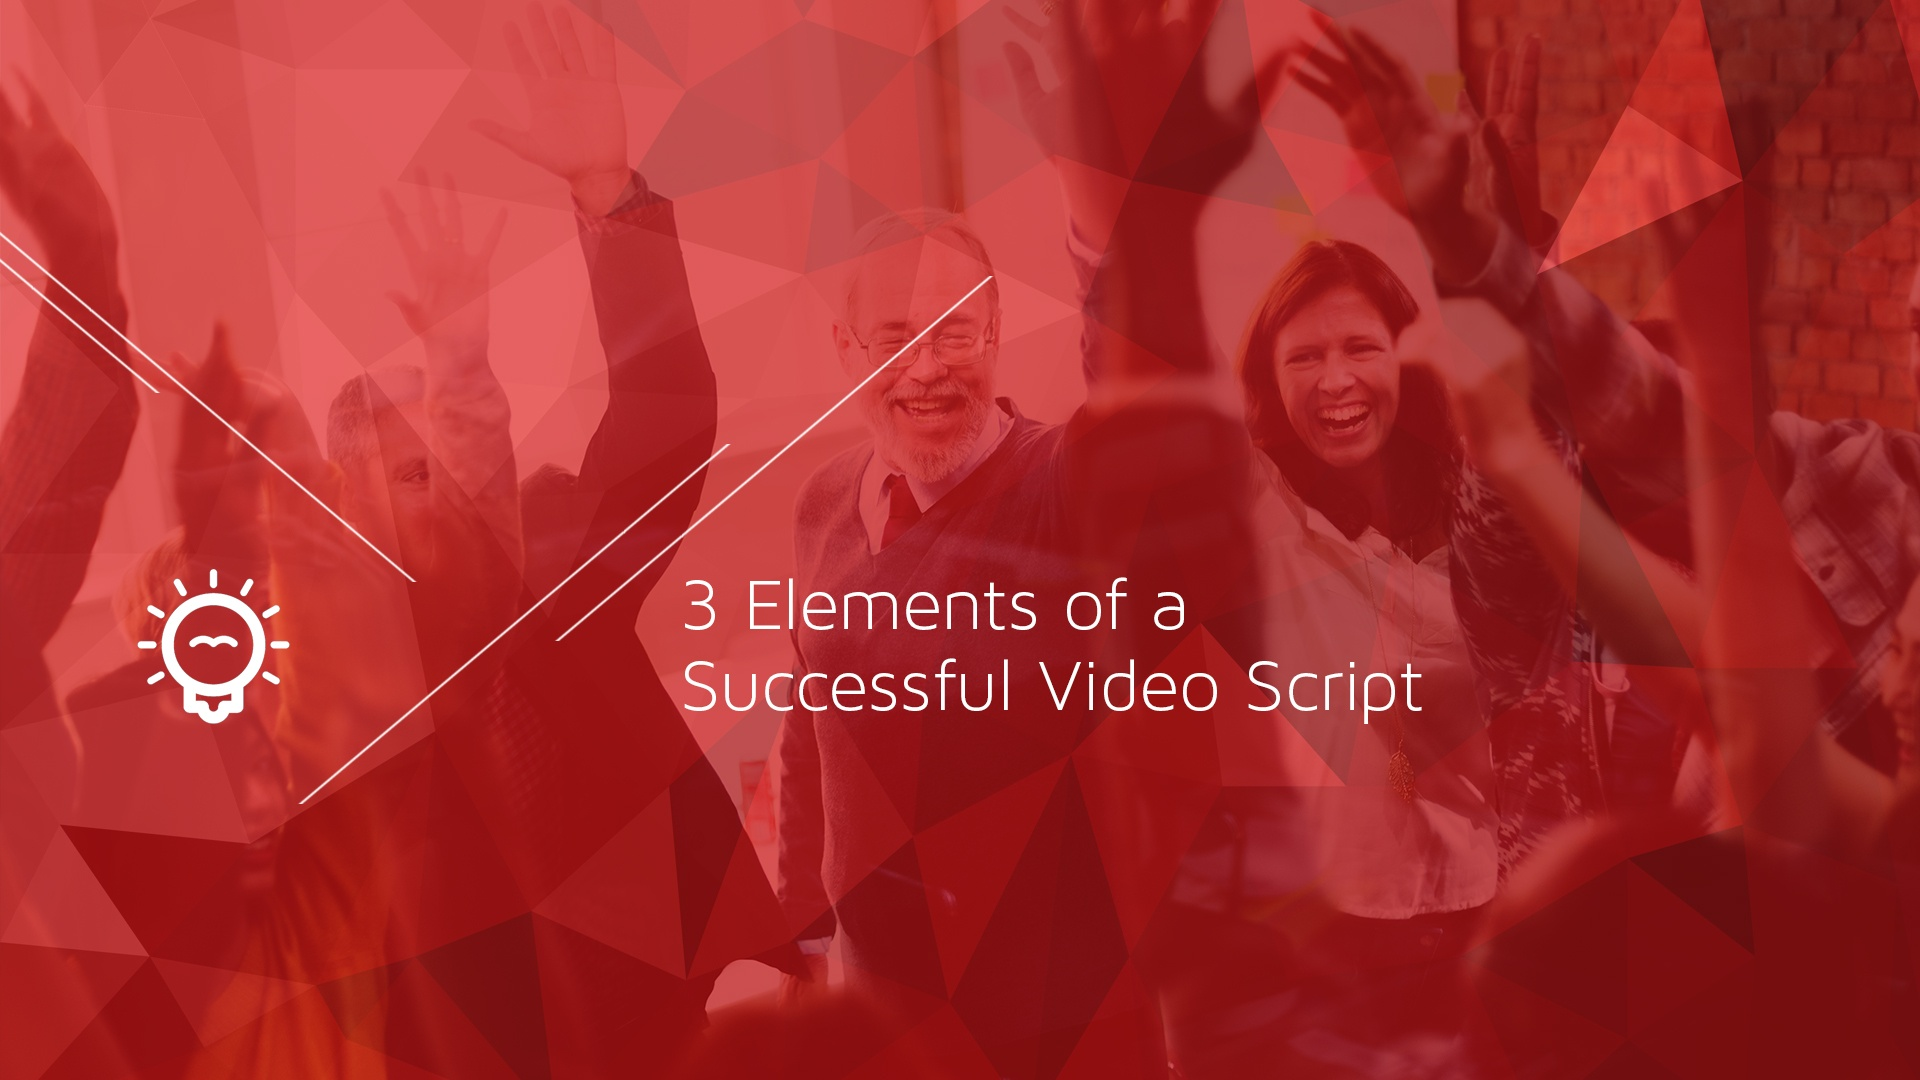 3 Elements for a Successful Video Script